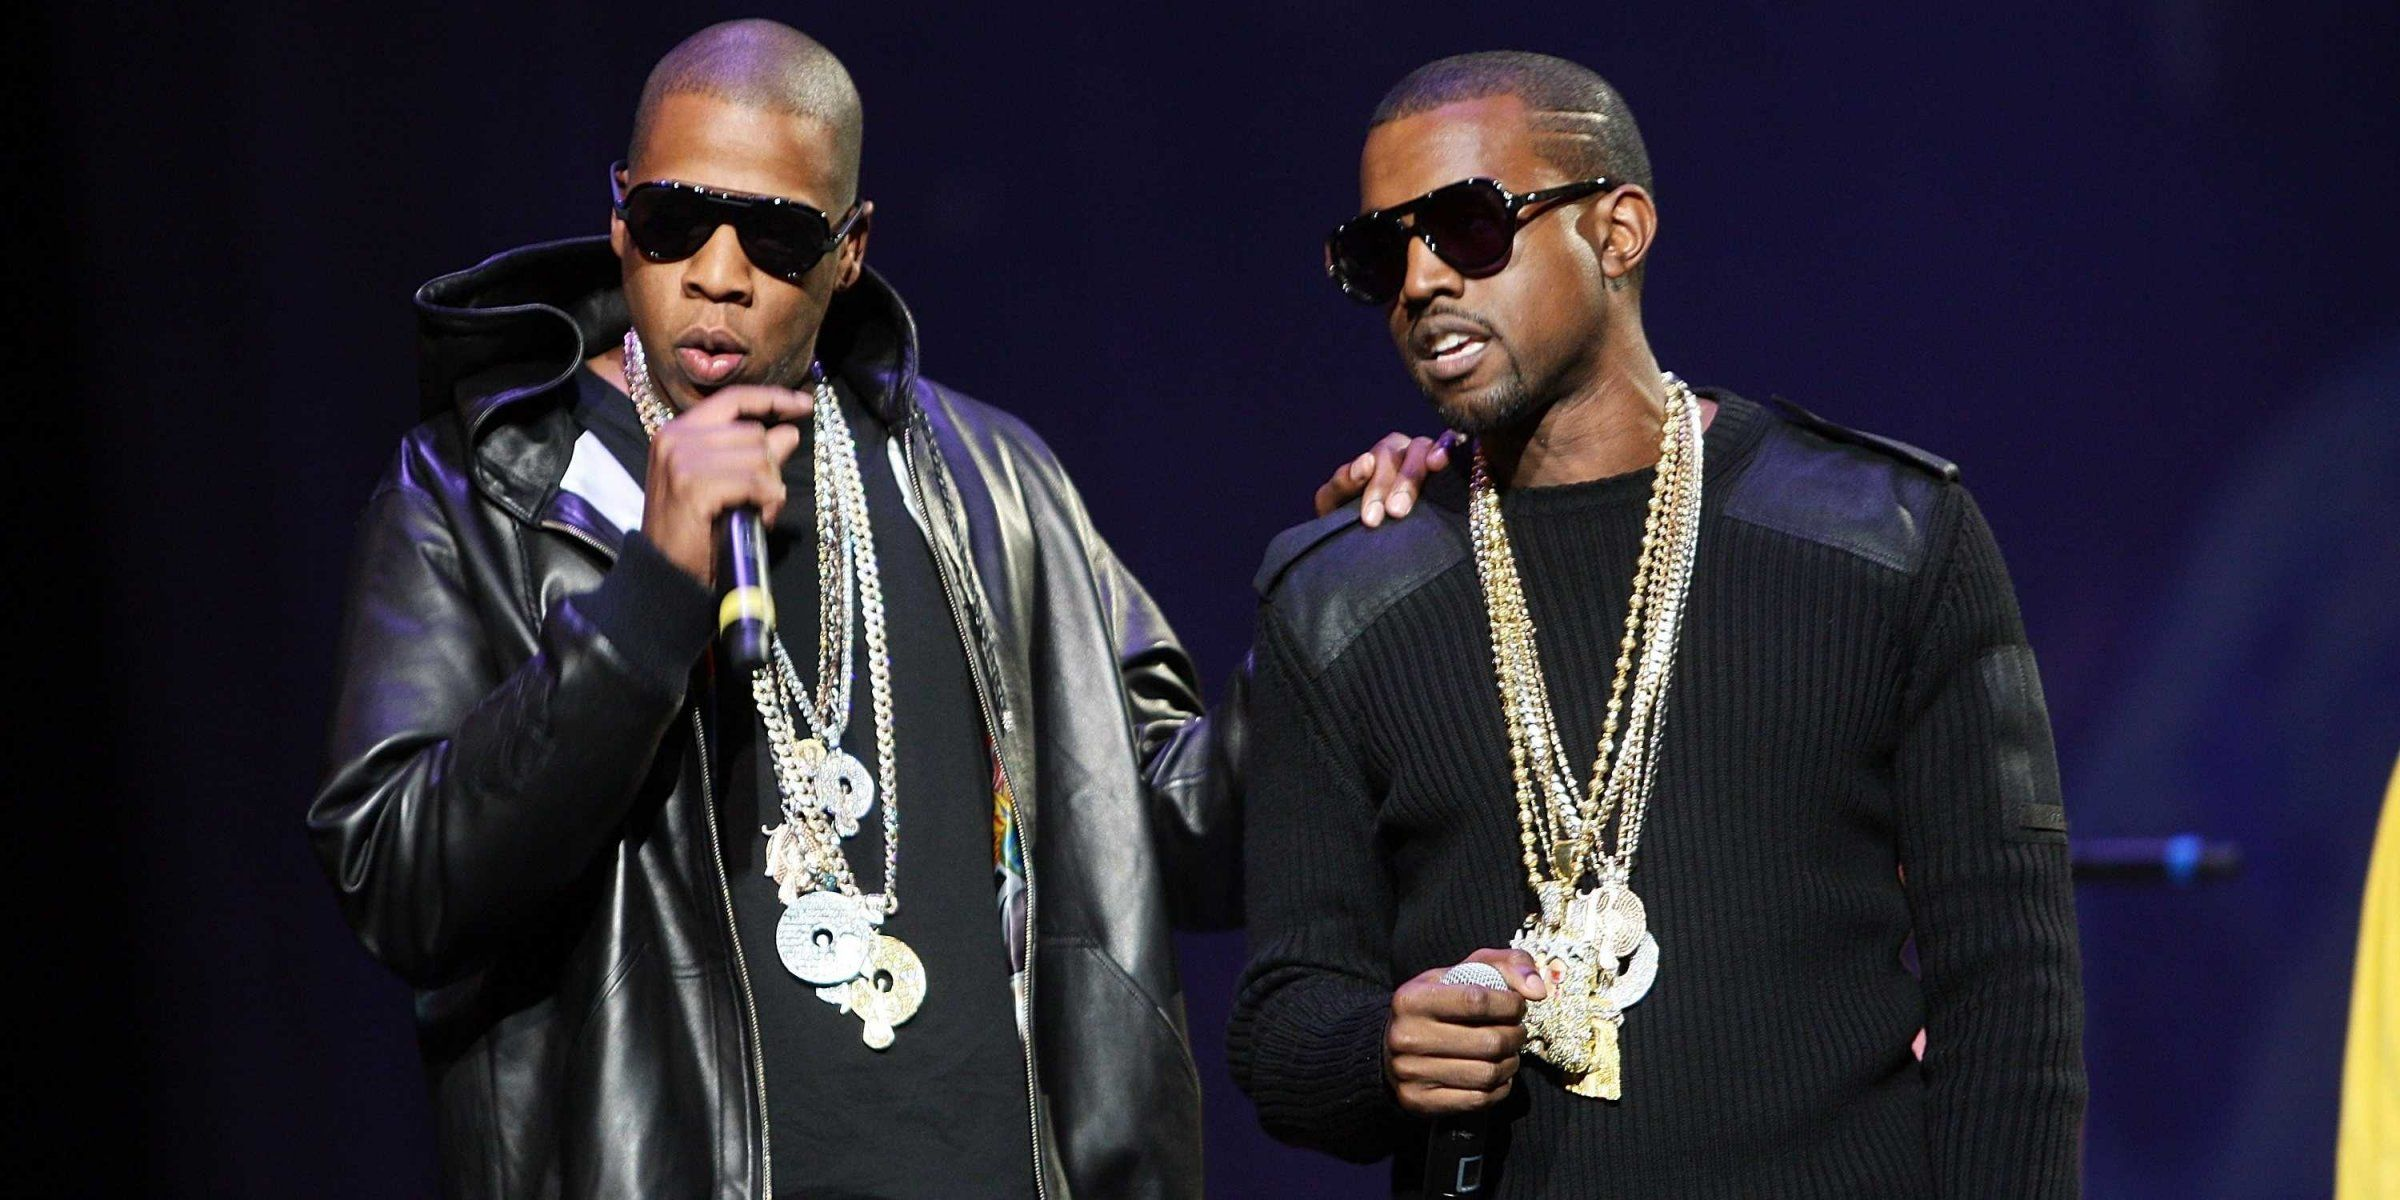 Jay Z Breaks His Silence On His Complicated Relationship With Kanye West Kanye West Jay Z Kanye